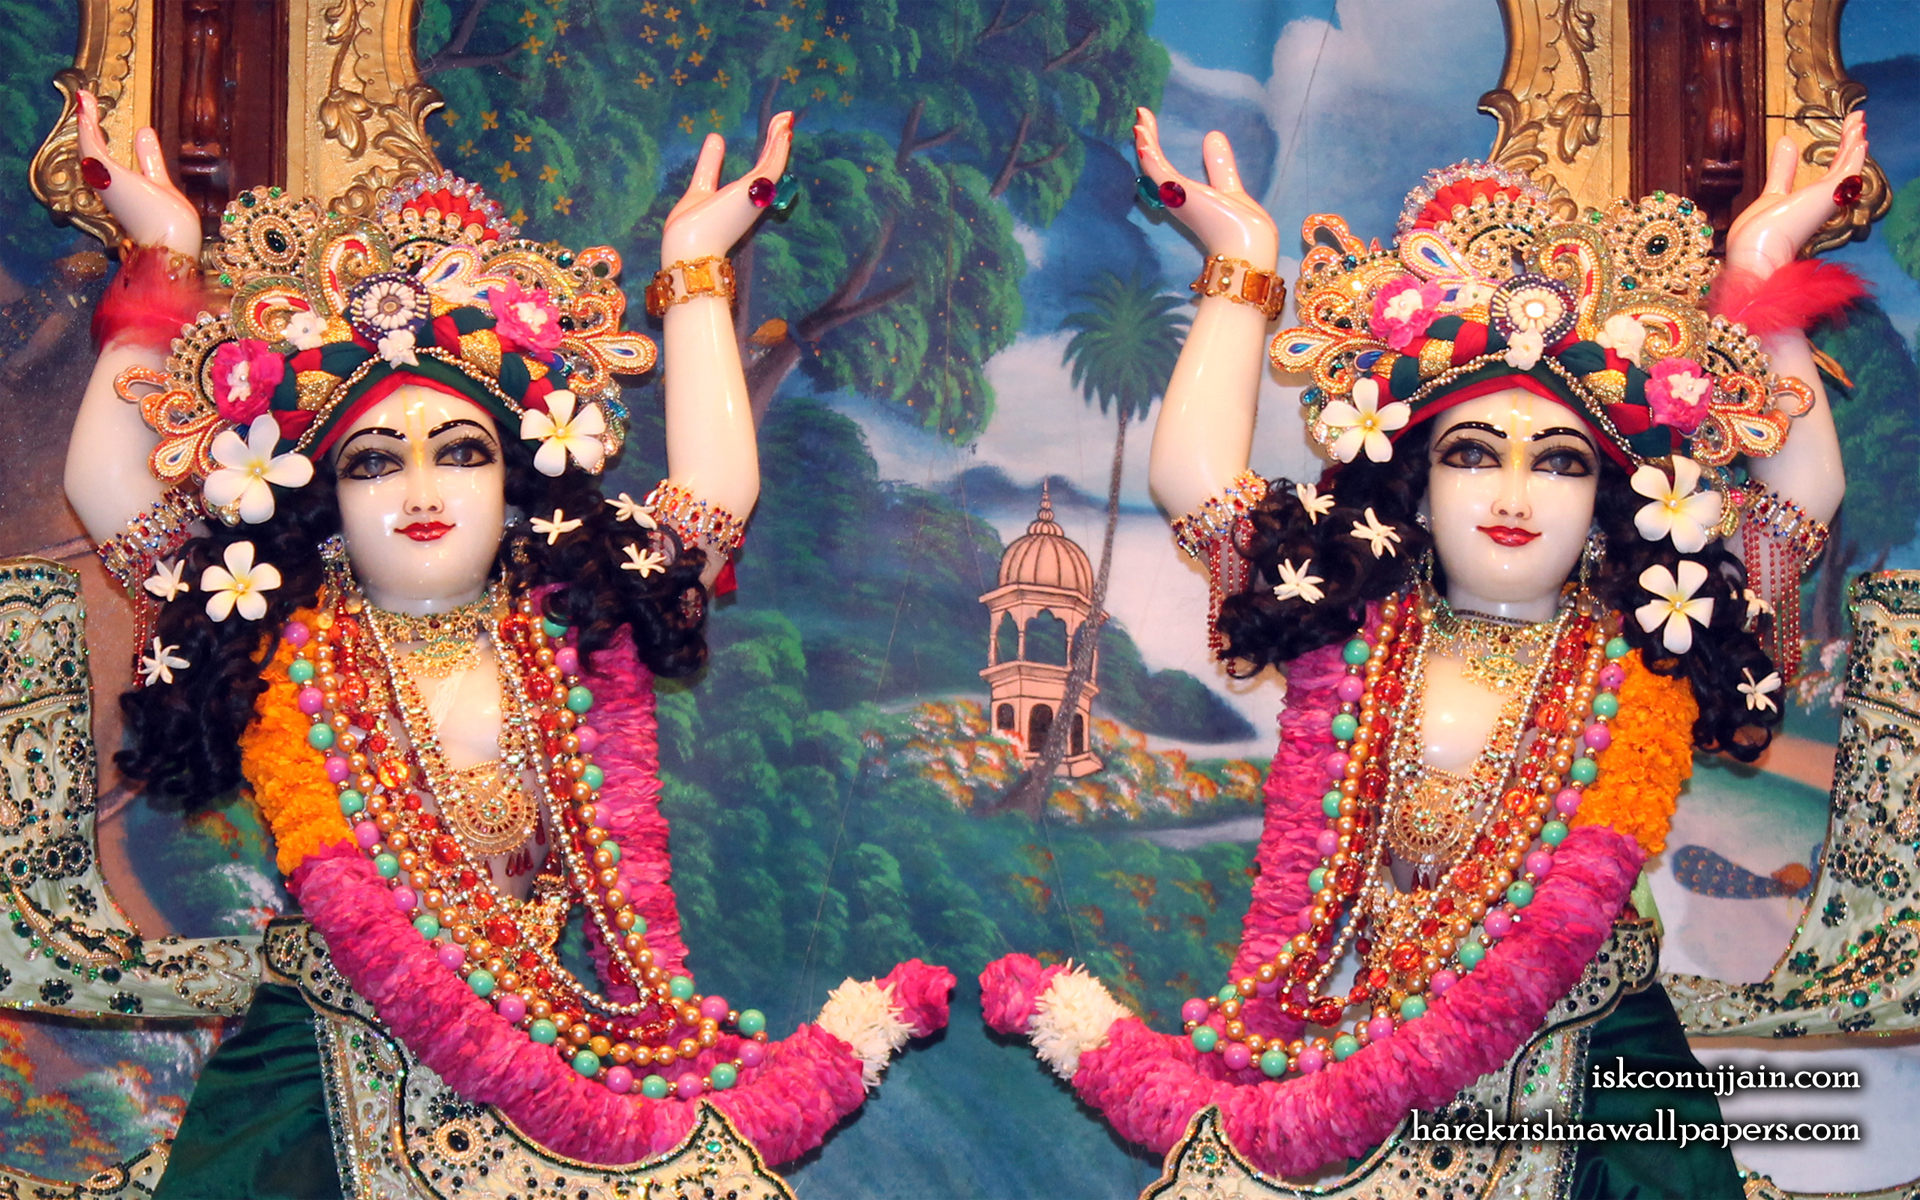 Sri Sri Gaura Nitai Close up Wallpaper (005) Size 1920x1200 Download